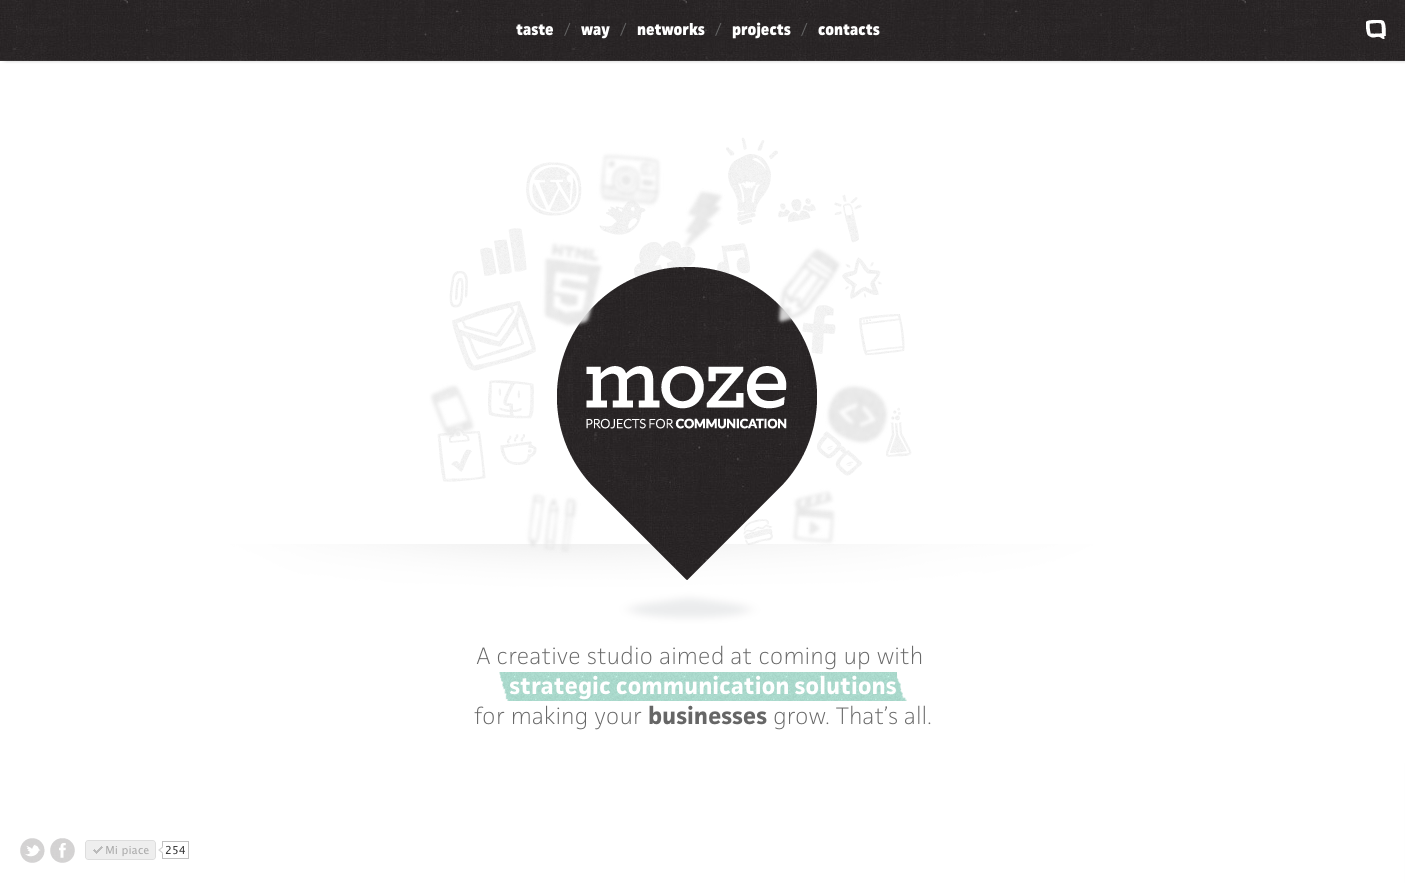 moze Website Screenshot